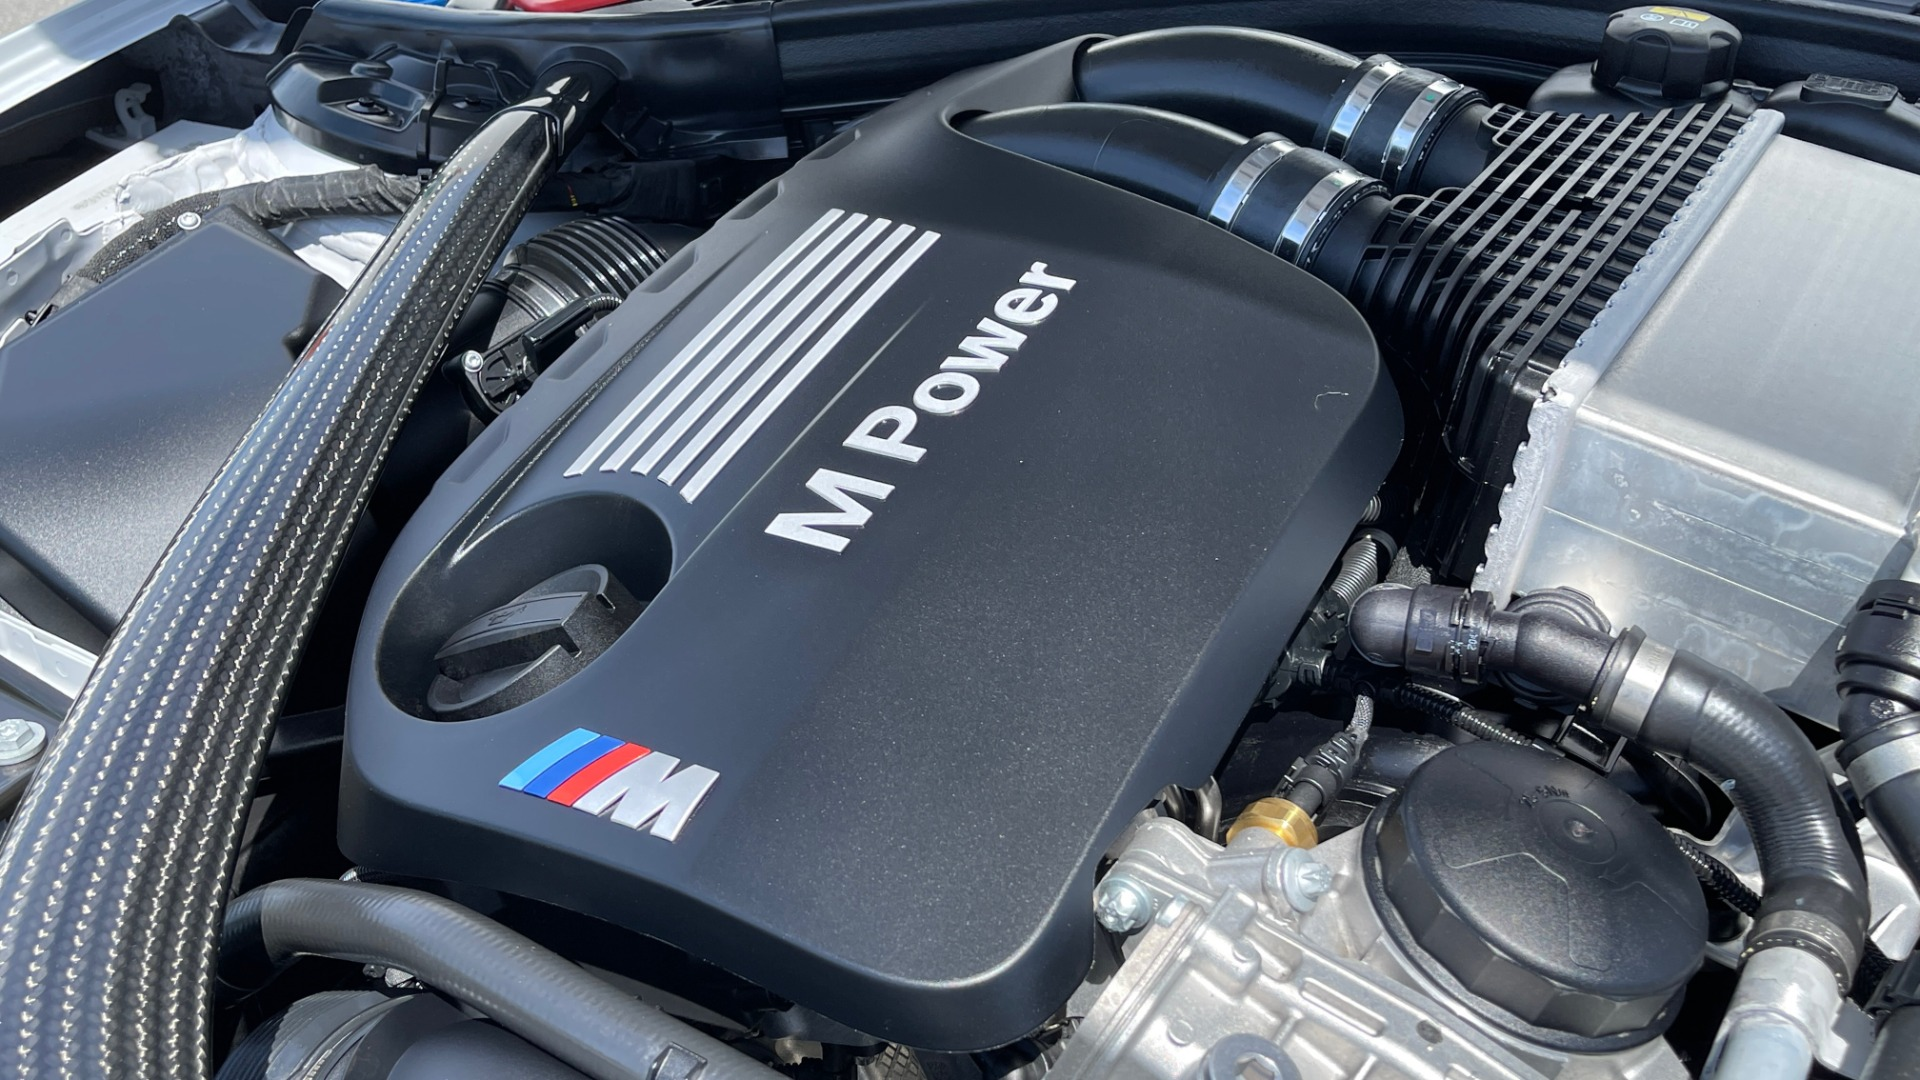 Used 2020 BMW M2 COMPETITION 405HP / COUPE / MANUAL / NAV / H/K SOUND / REARVIEW for sale $64,388 at Formula Imports in Charlotte NC 28227 12